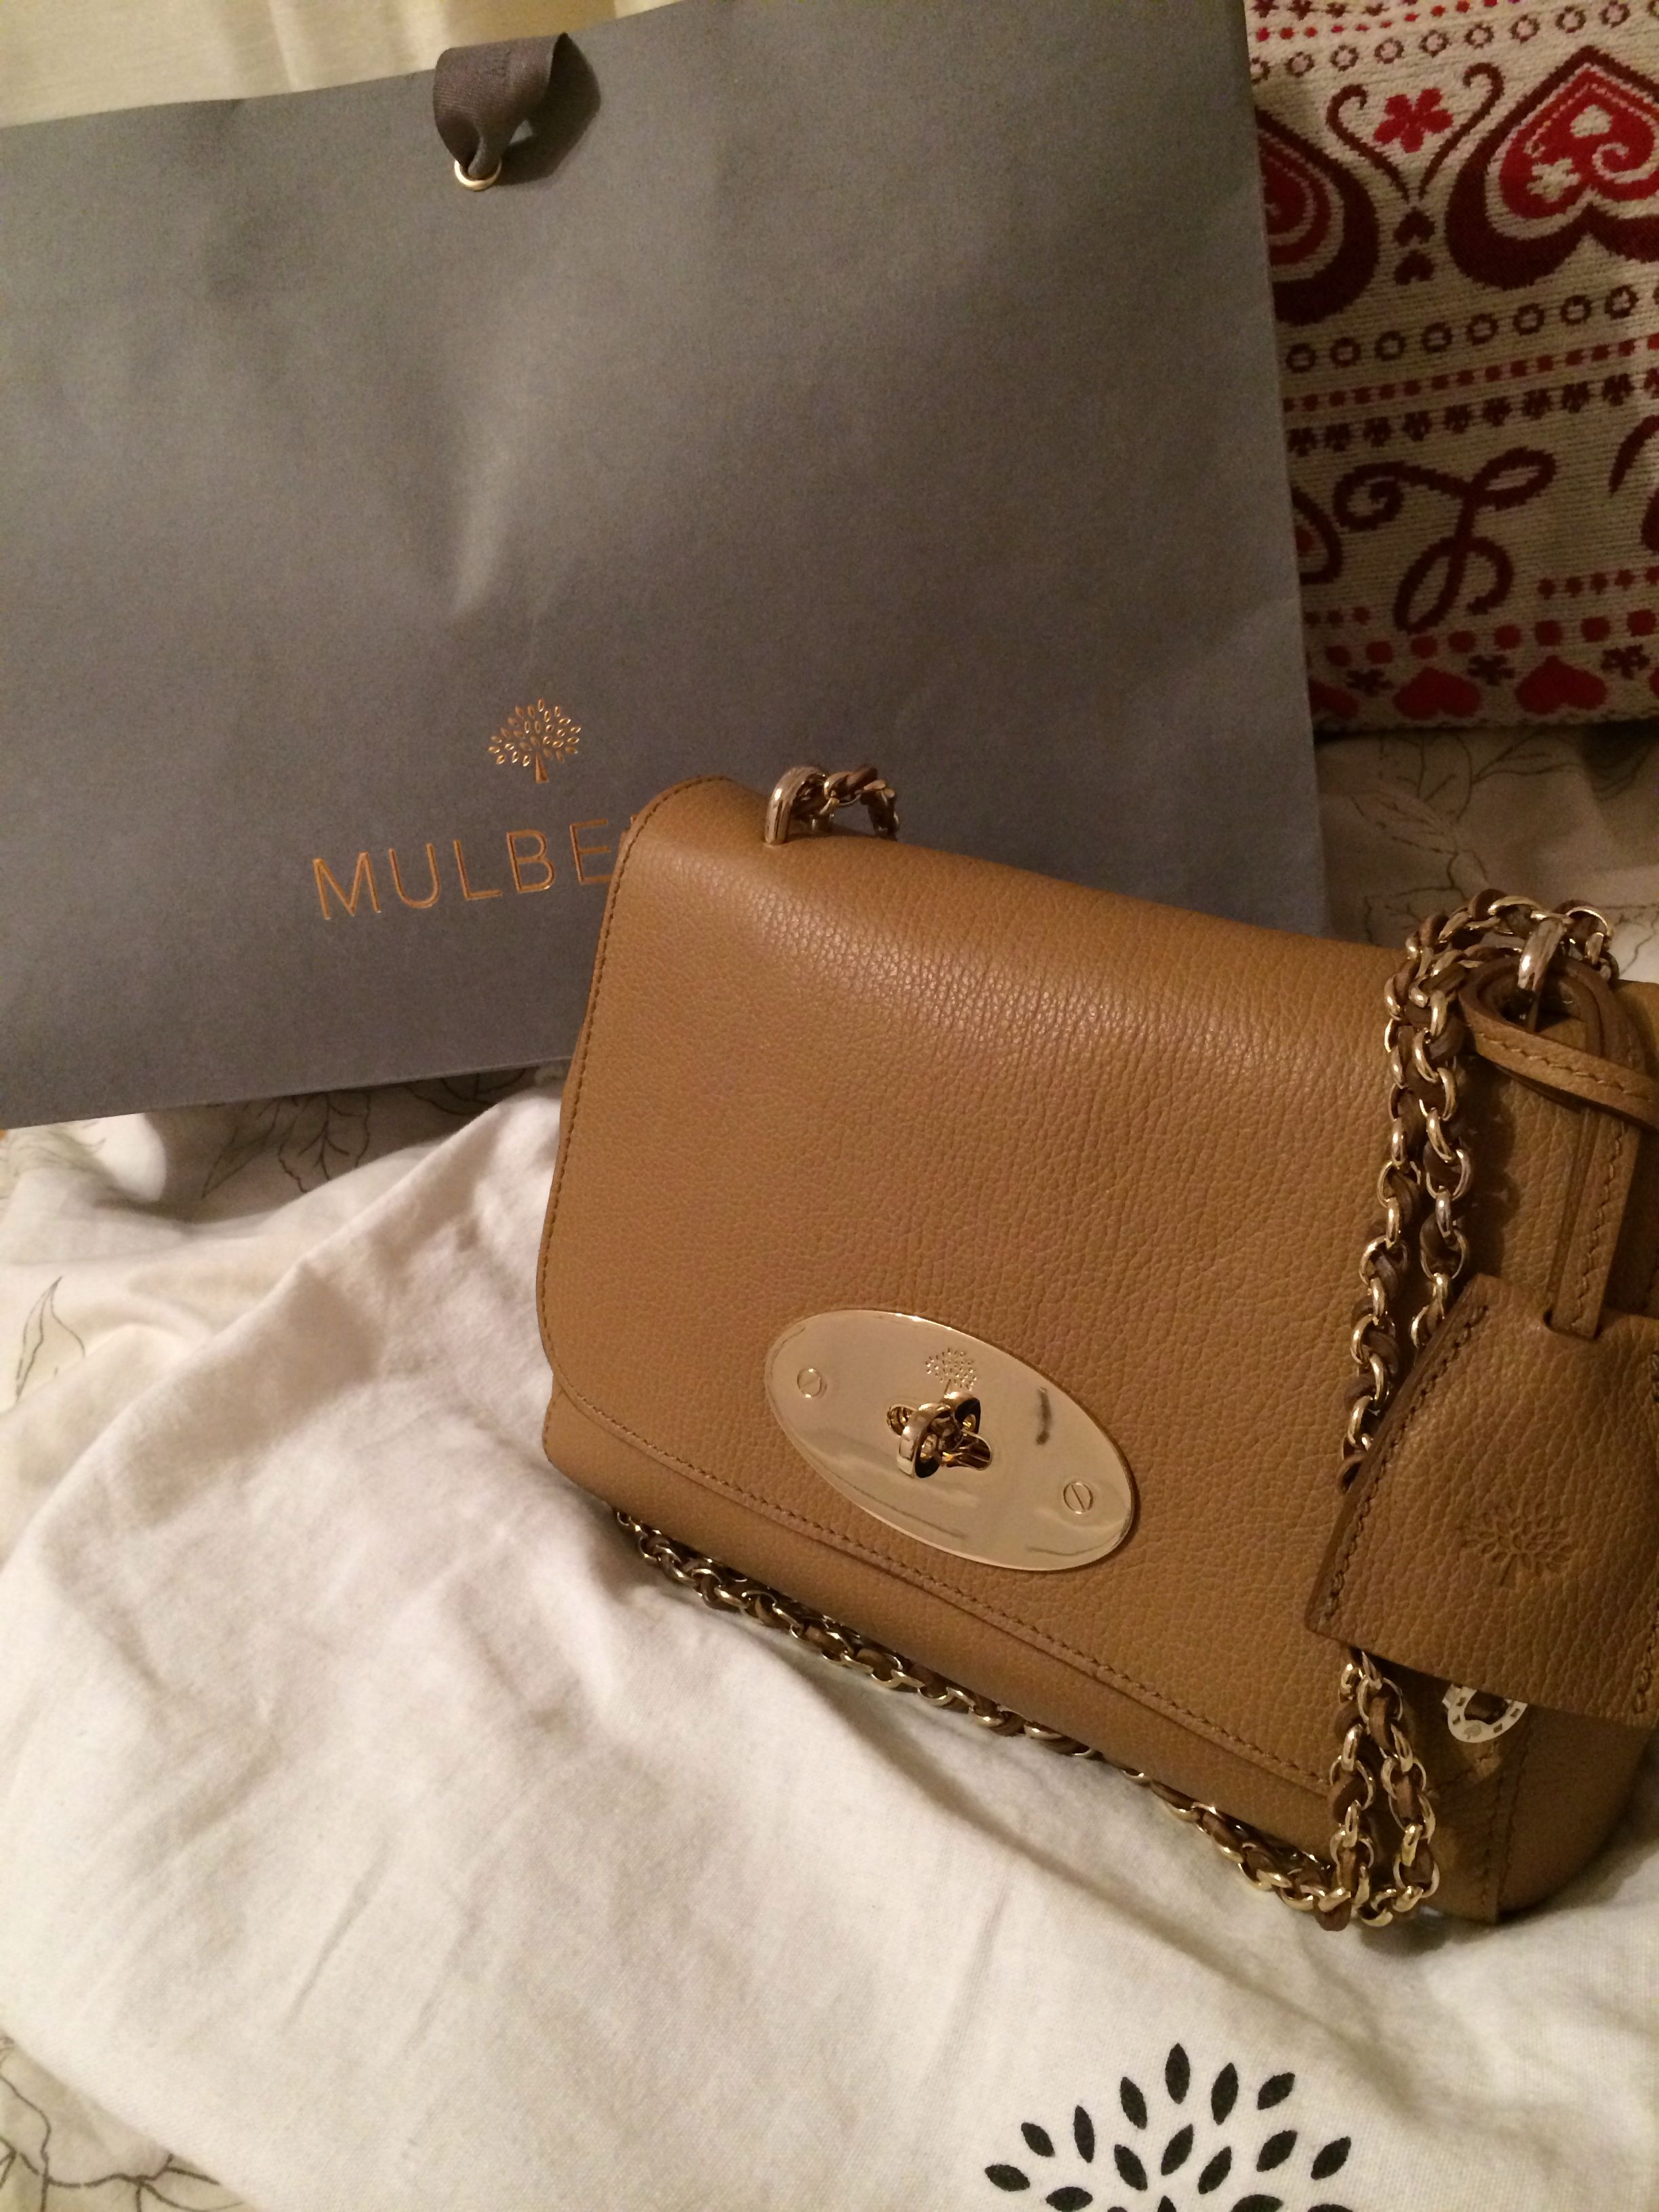 Mulberry Medium Lily in Deer Brown. bag 0796285982cce